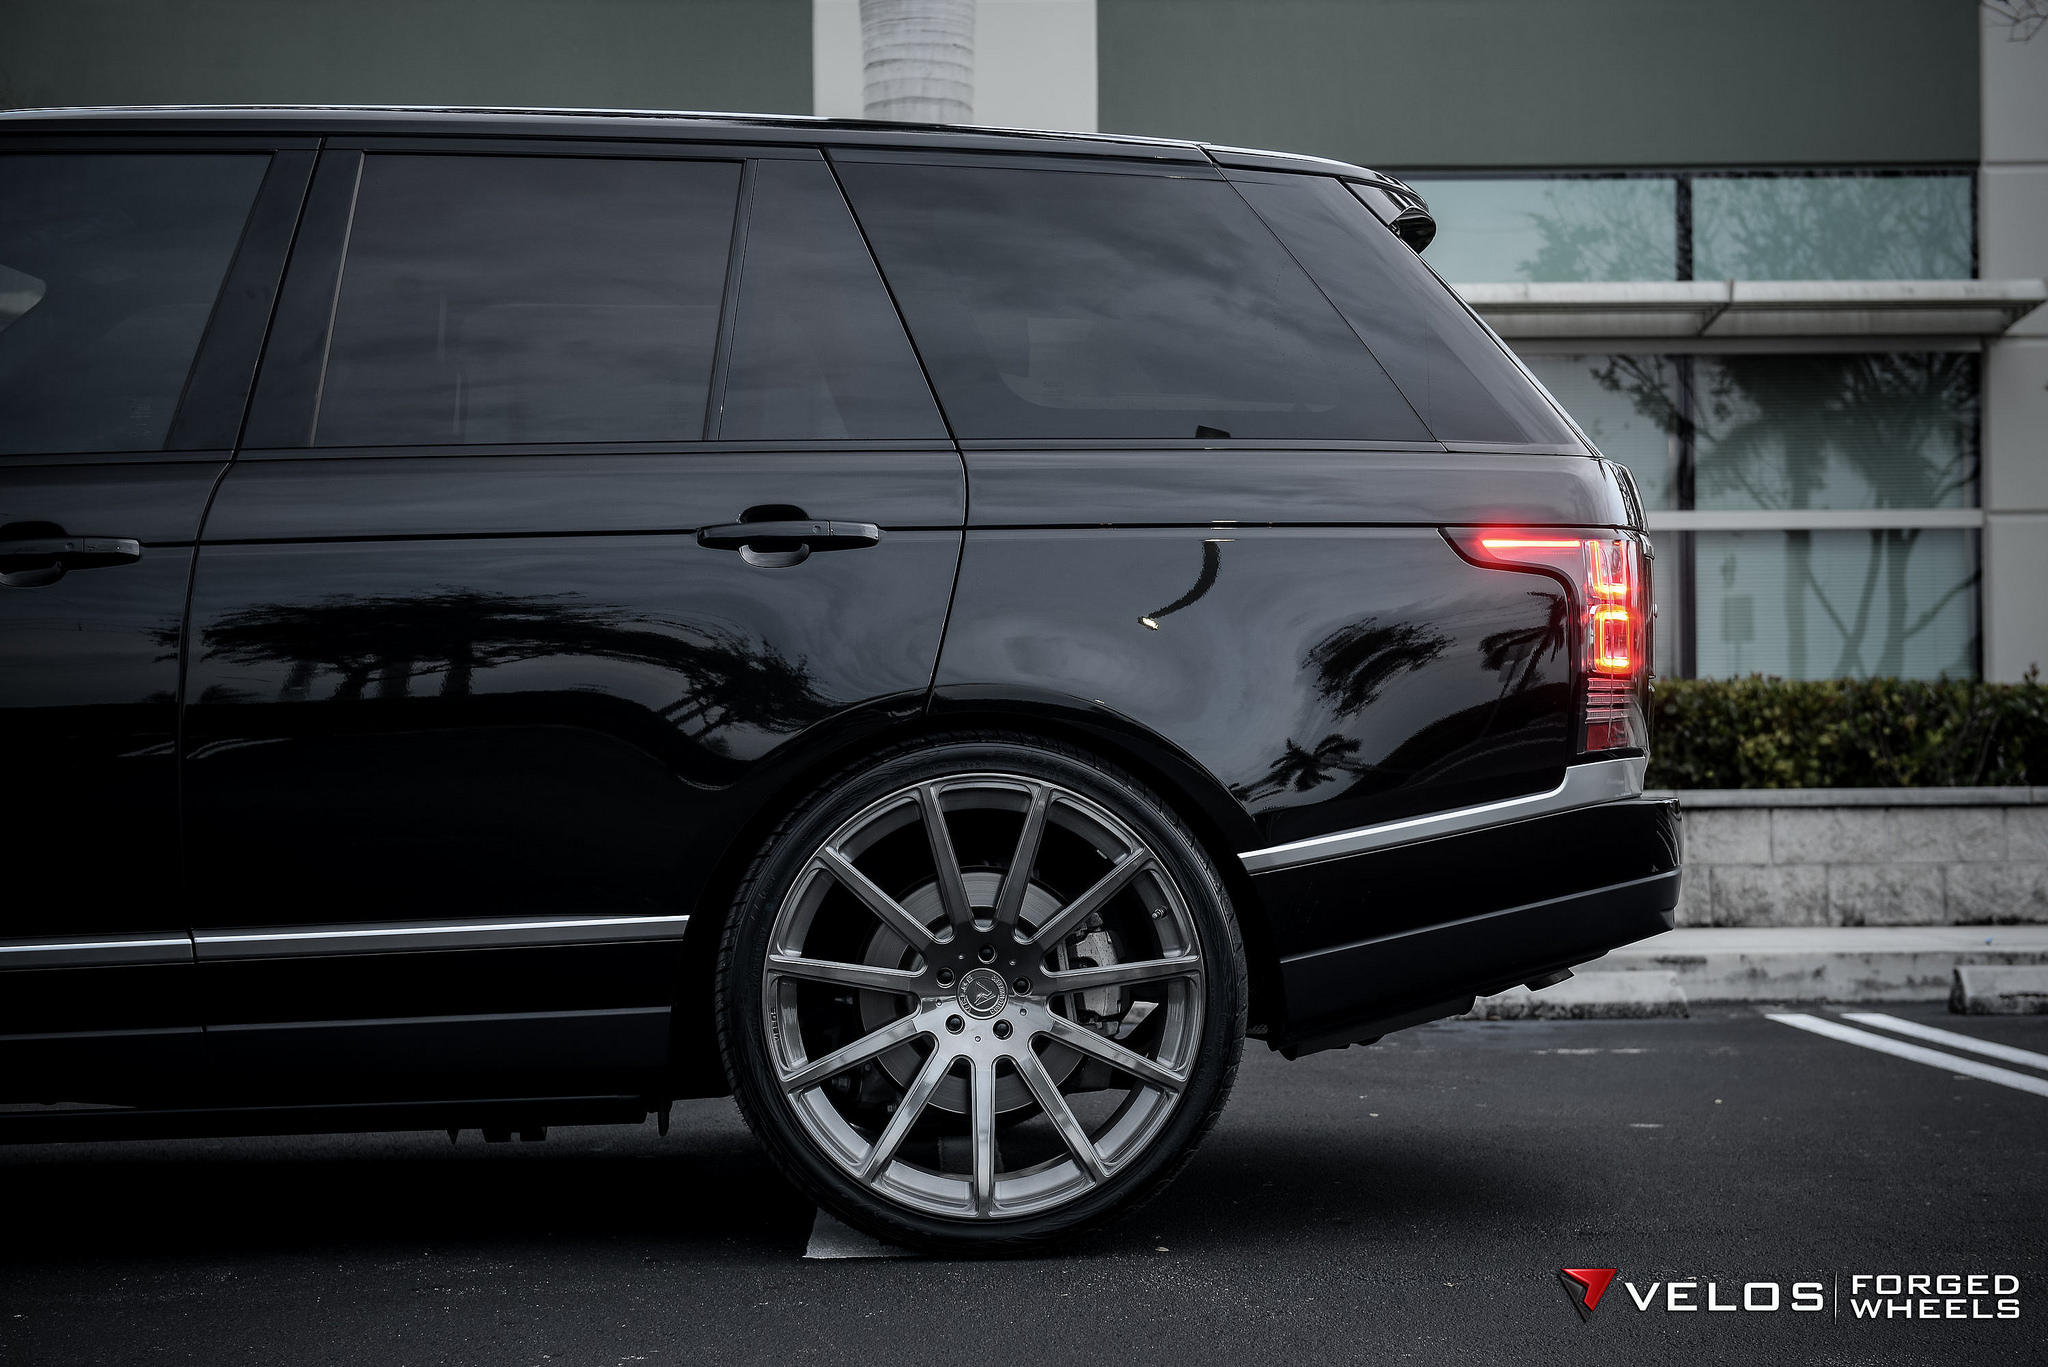 Range Rover Supercharged Full Size on Velos S2 Wheels VELOS